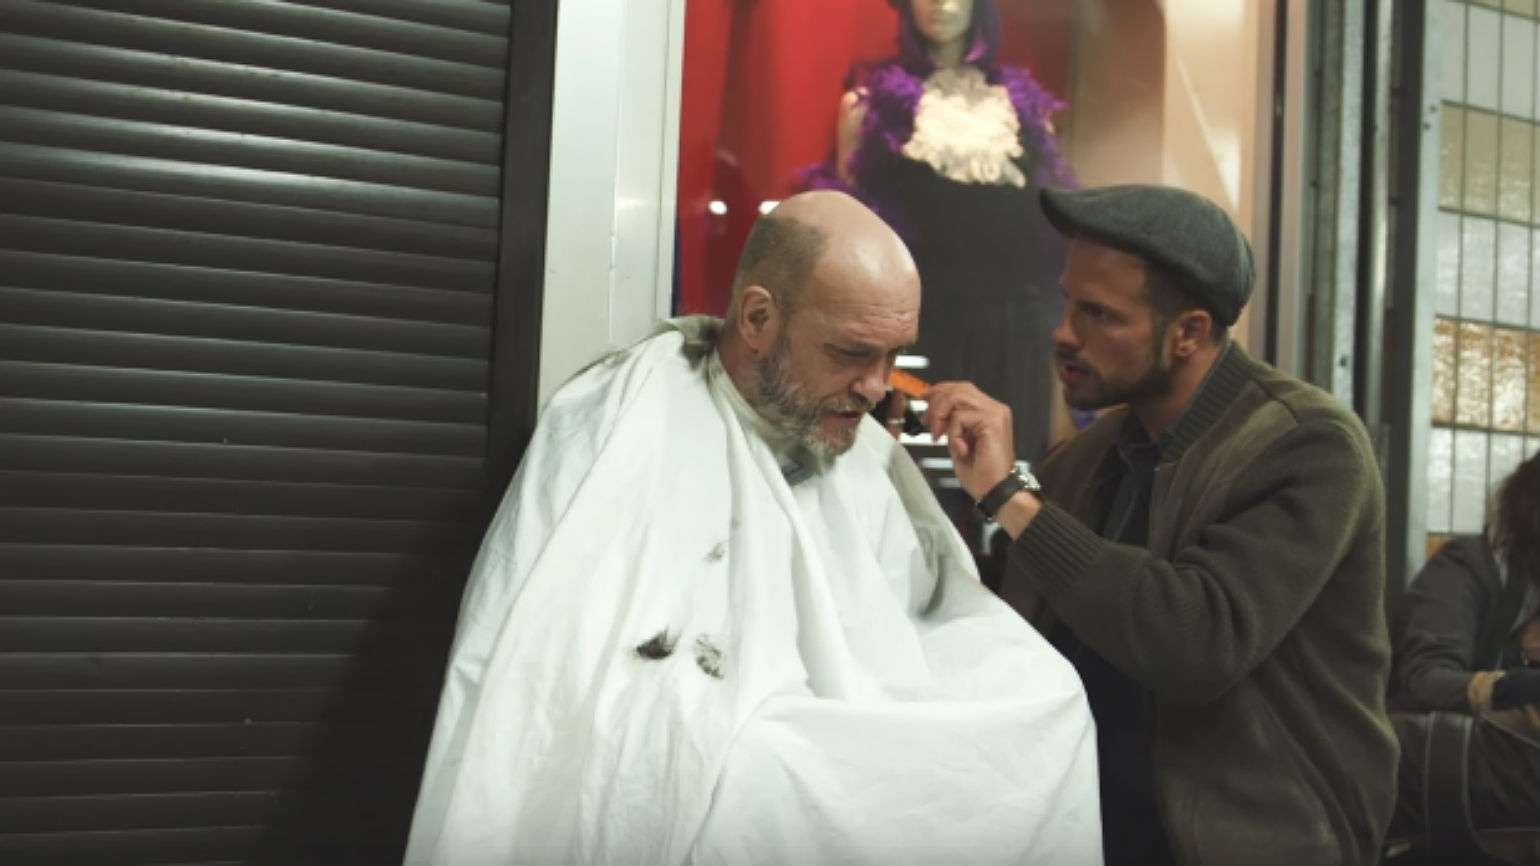 Joshua Coombes giving haircut to  homeless person